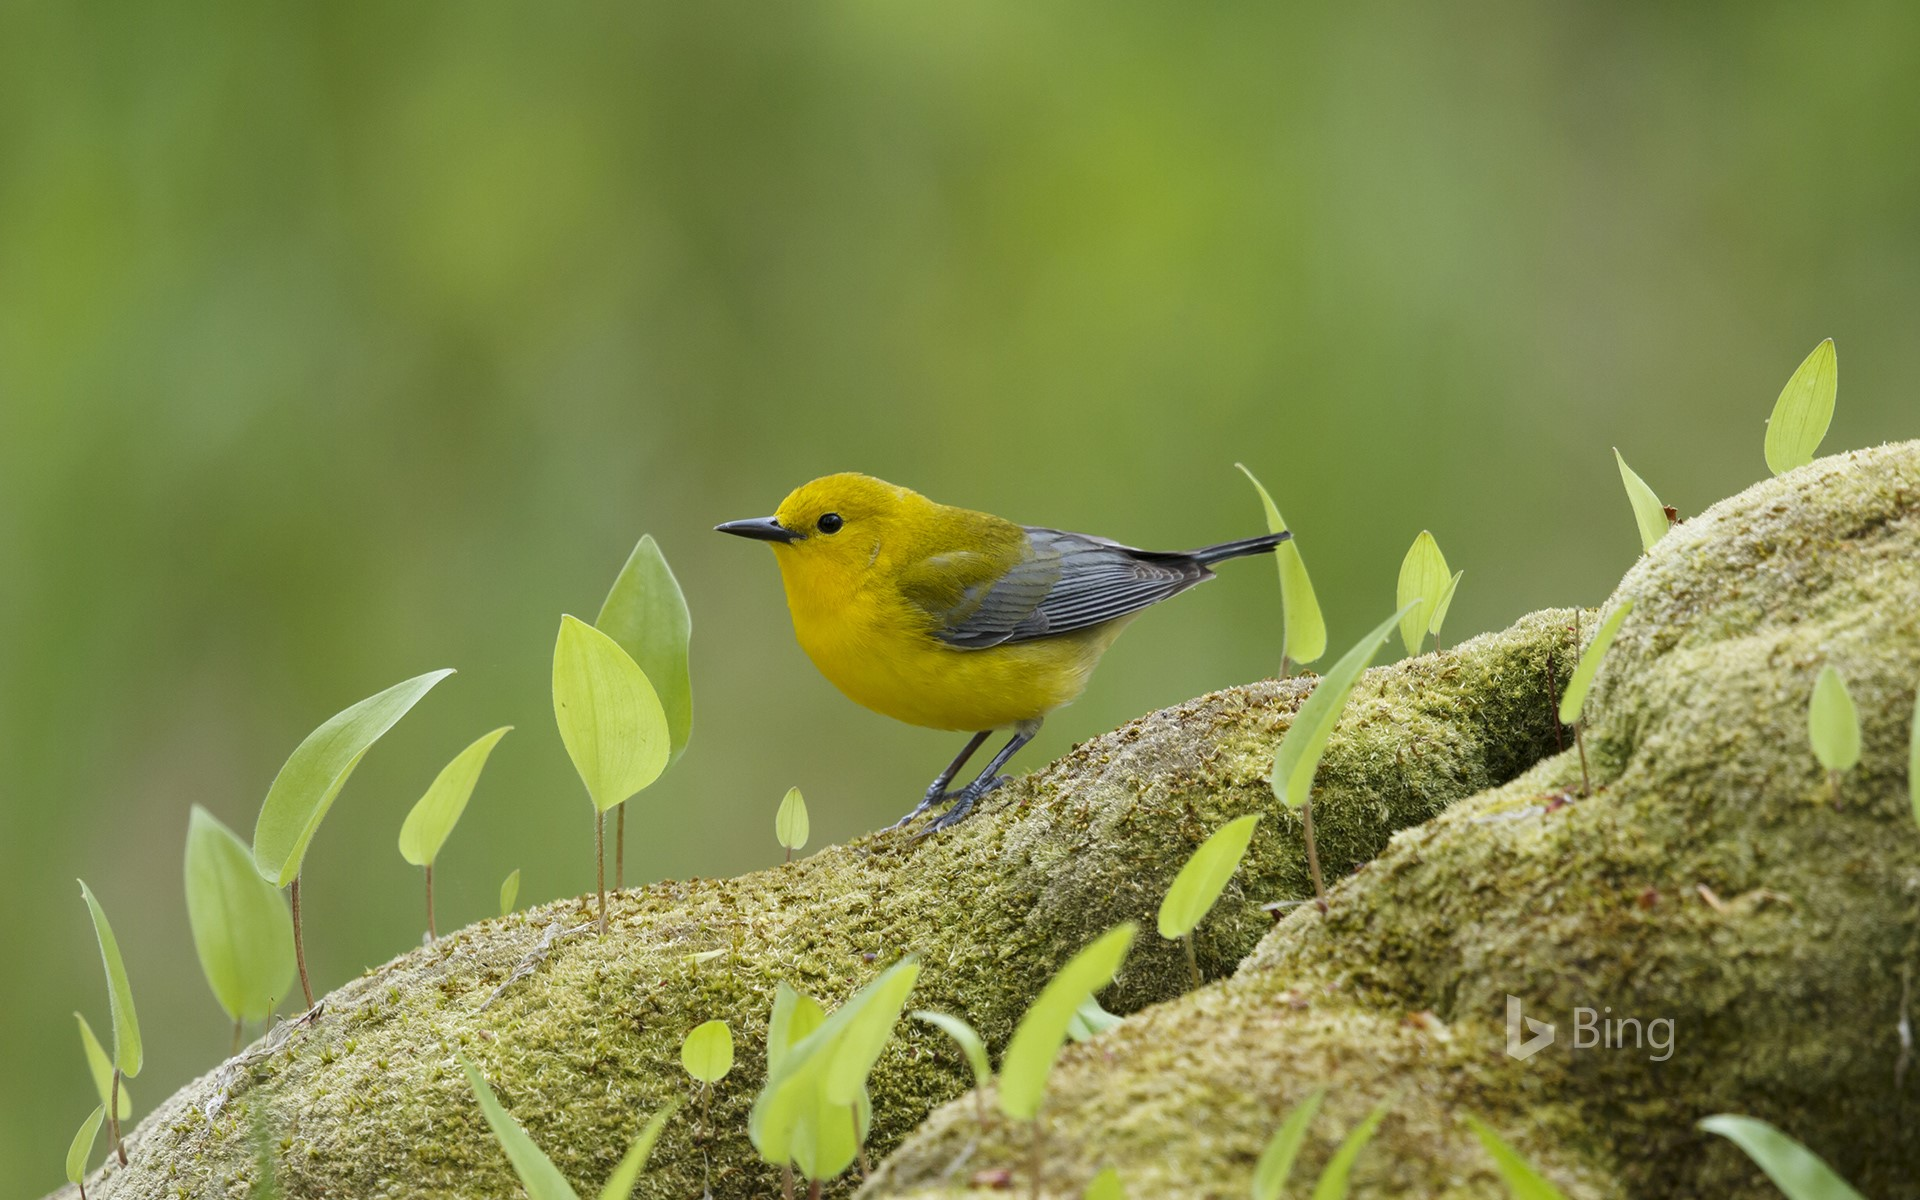 Prothonotary warbler in Ontario, Canada